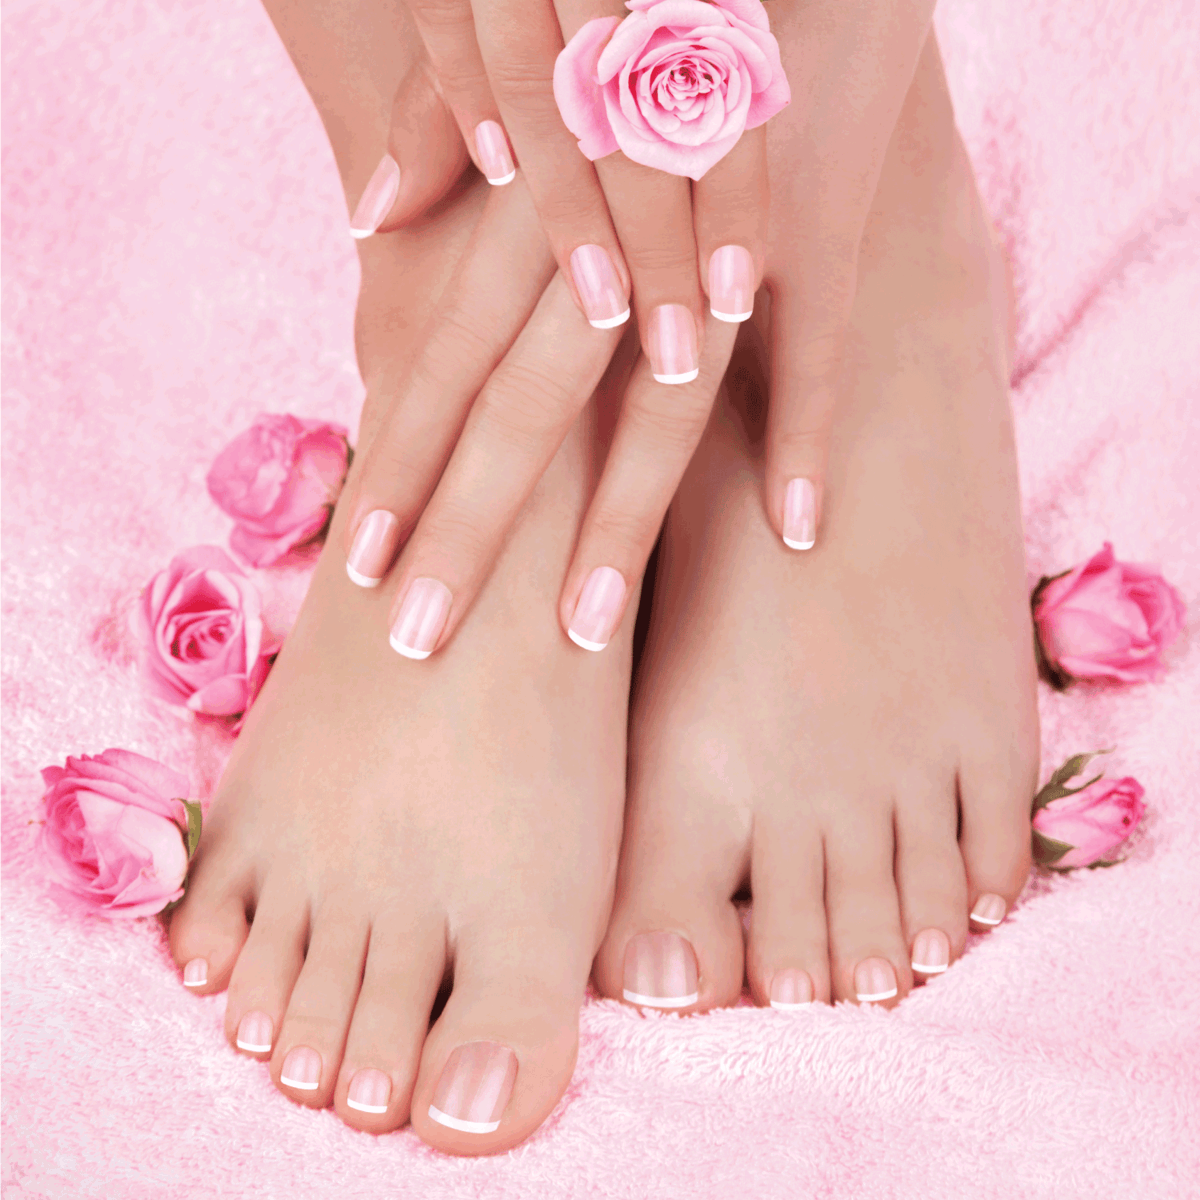 Skincare of a beauty female feet with pink roses and chic french tips